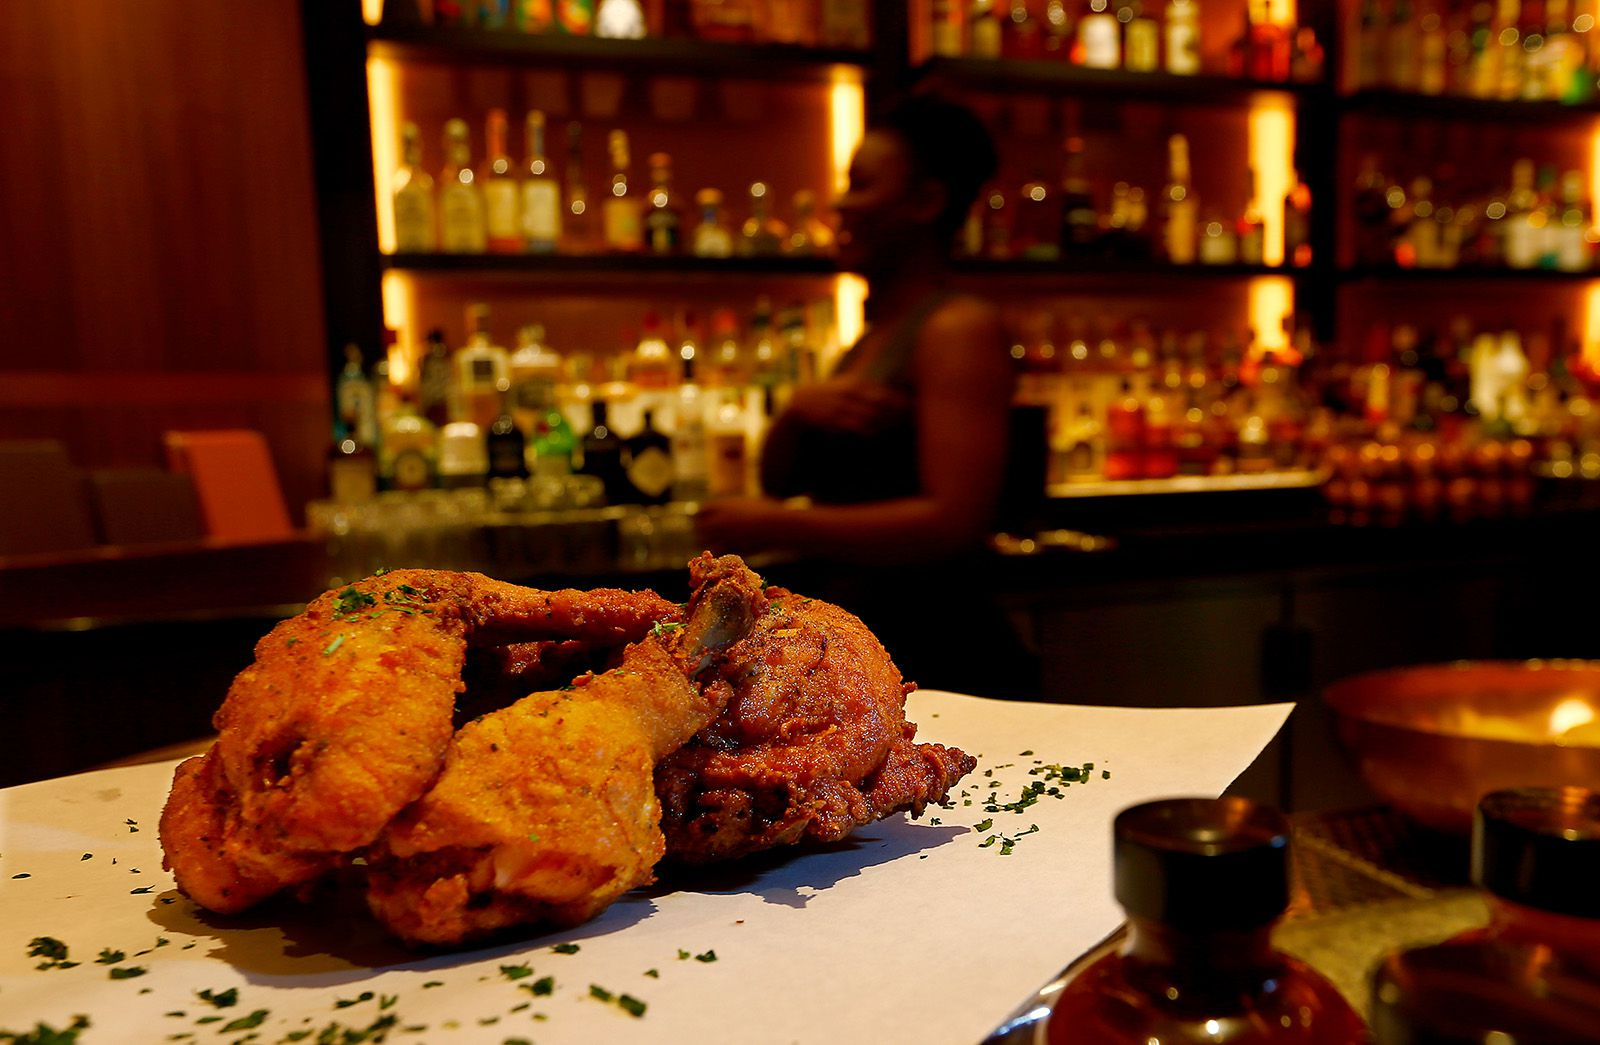 Fried chicken is among the Southern fare on the menu at Shaquille's in L.A. Live.